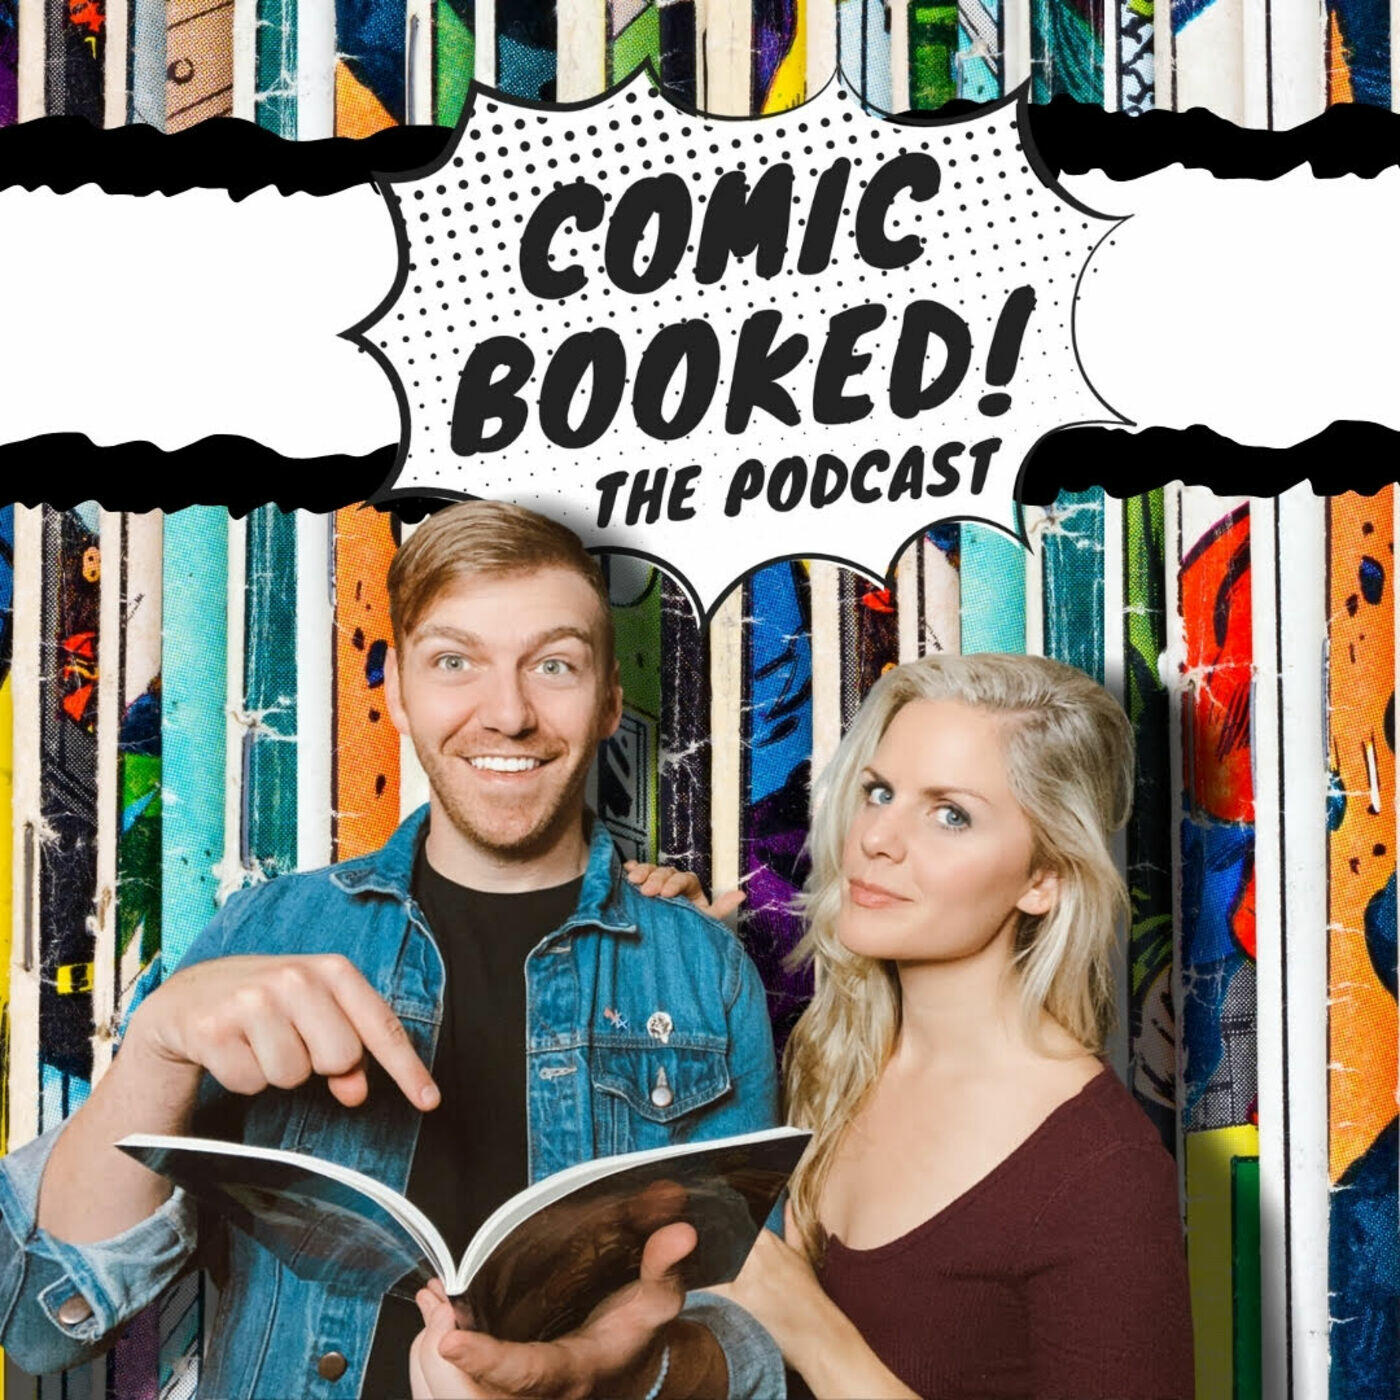 Comic Booked! The Podcast